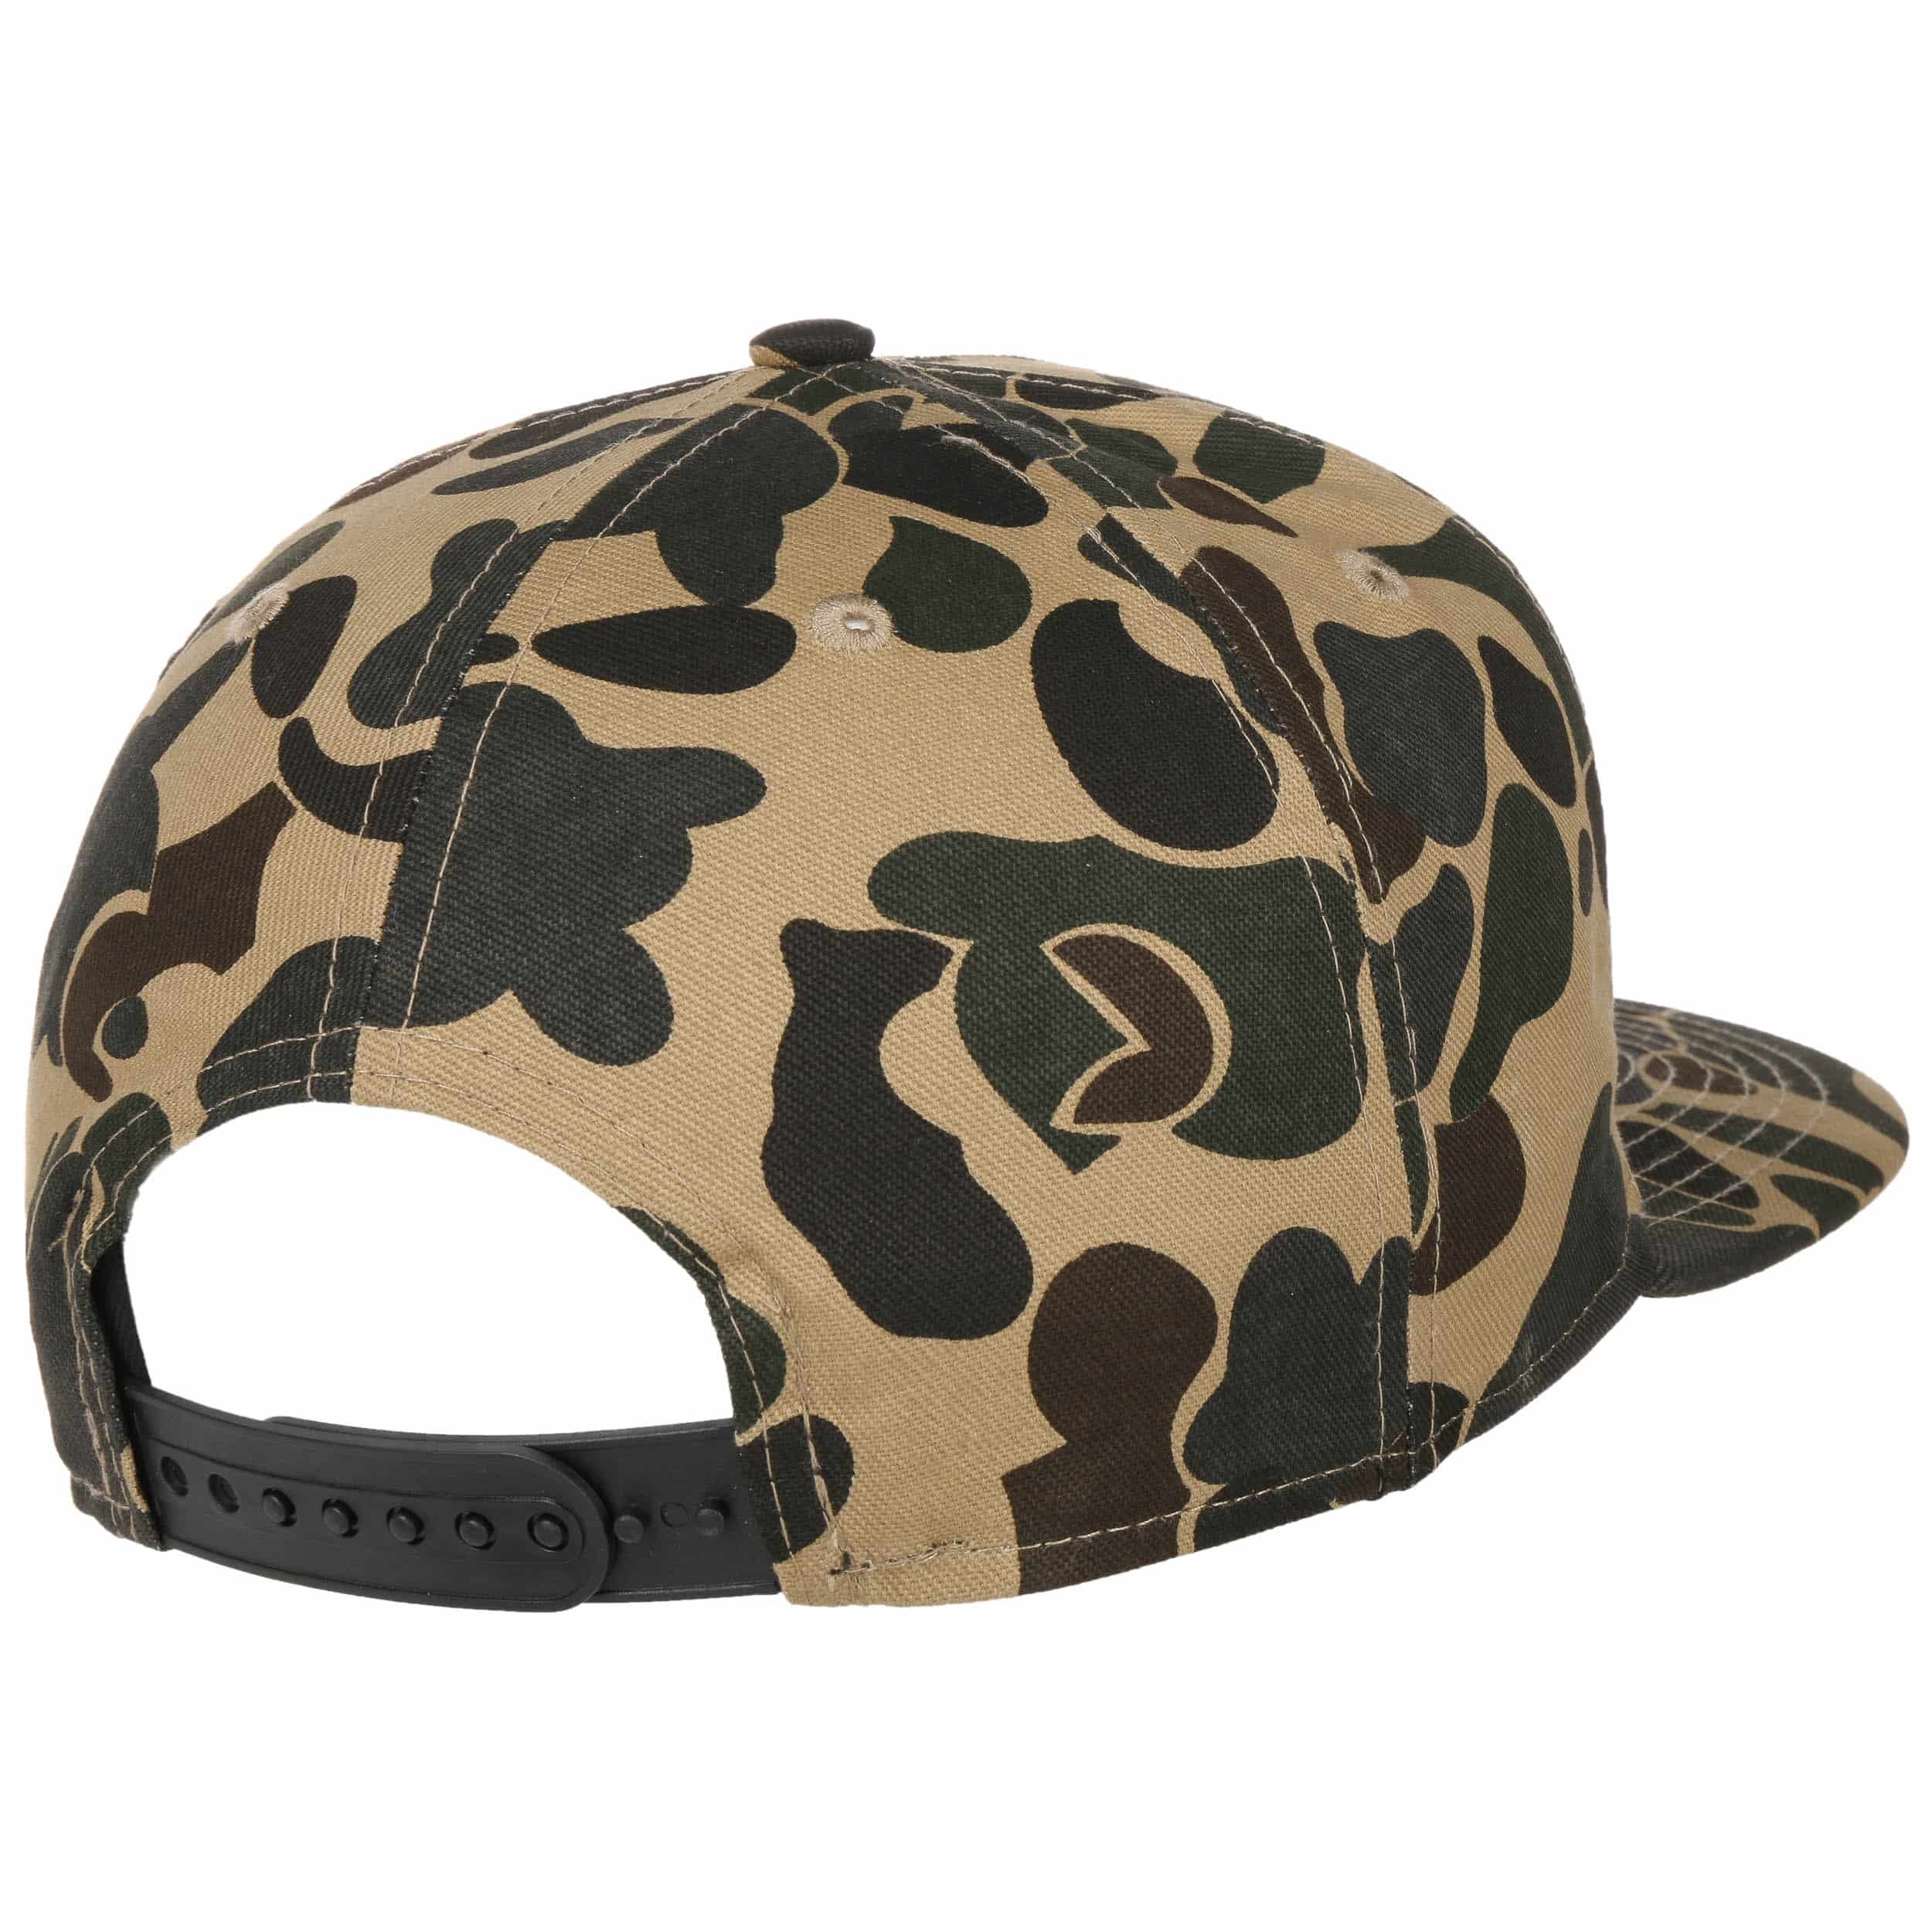 9Fifty Camo Lakers Cap by New Era - camouflage 1 ... 01d1ade95a54